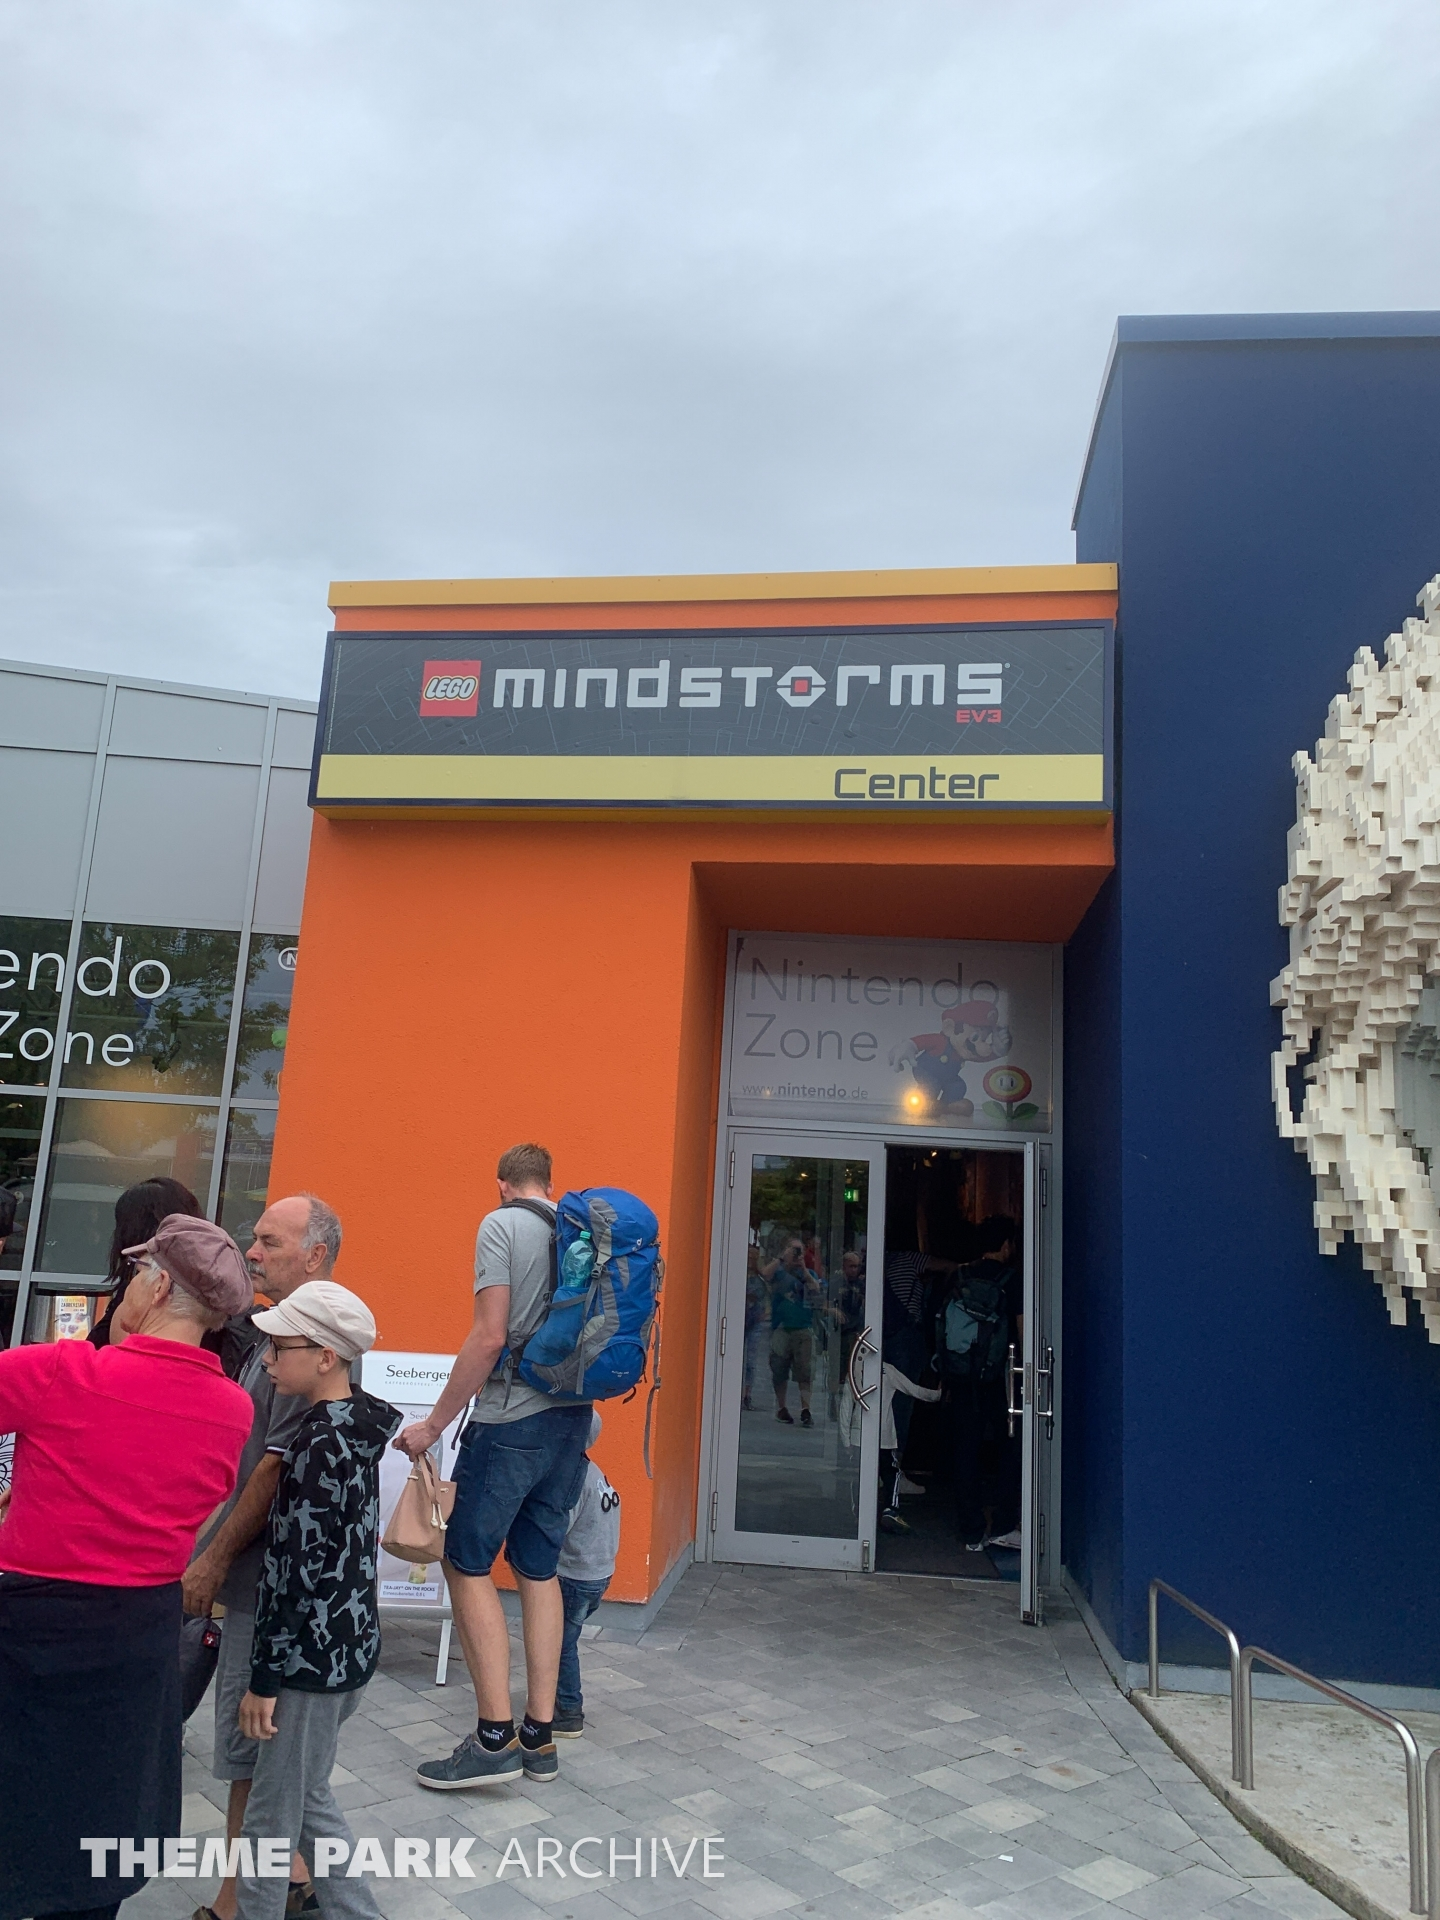 Mindstorms Center at LEGOLAND Deutschland